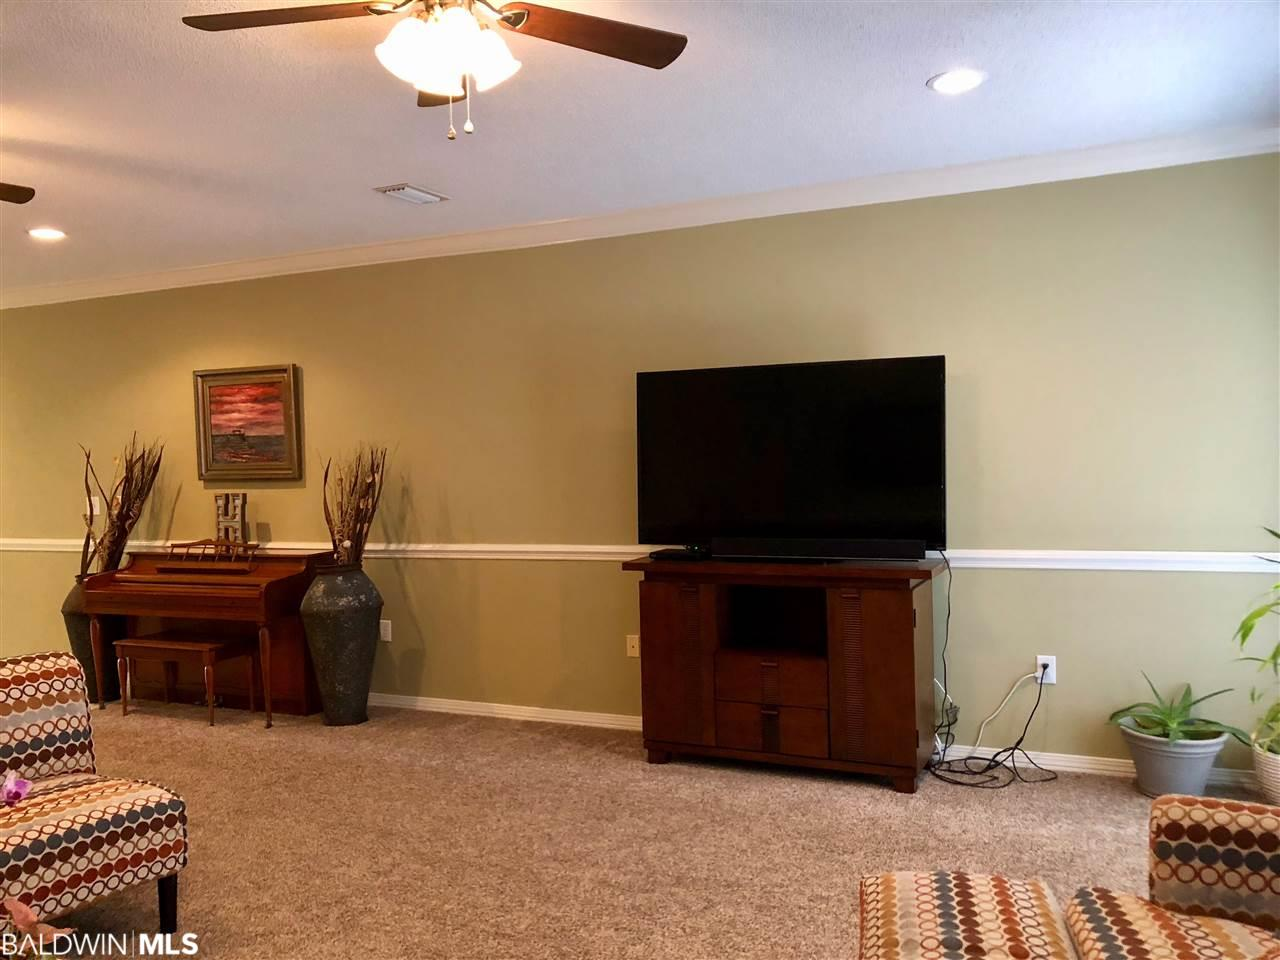 501 Cotton Creek Dr #804, Gulf Shores, AL 36542